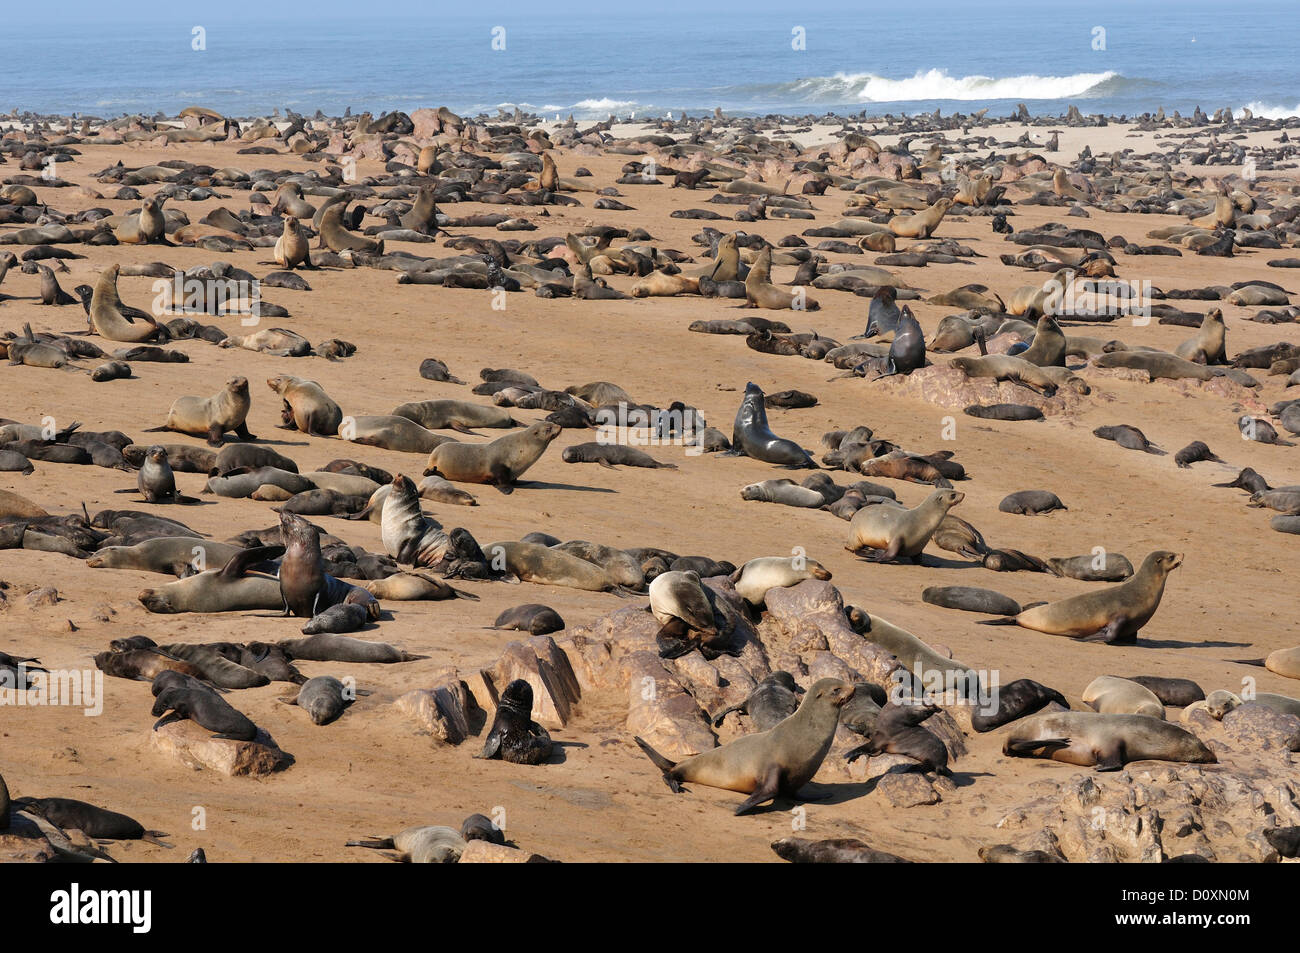 africa cape cross namibia seal colony seals animals skeleton stock photo 52218340 alamy. Black Bedroom Furniture Sets. Home Design Ideas